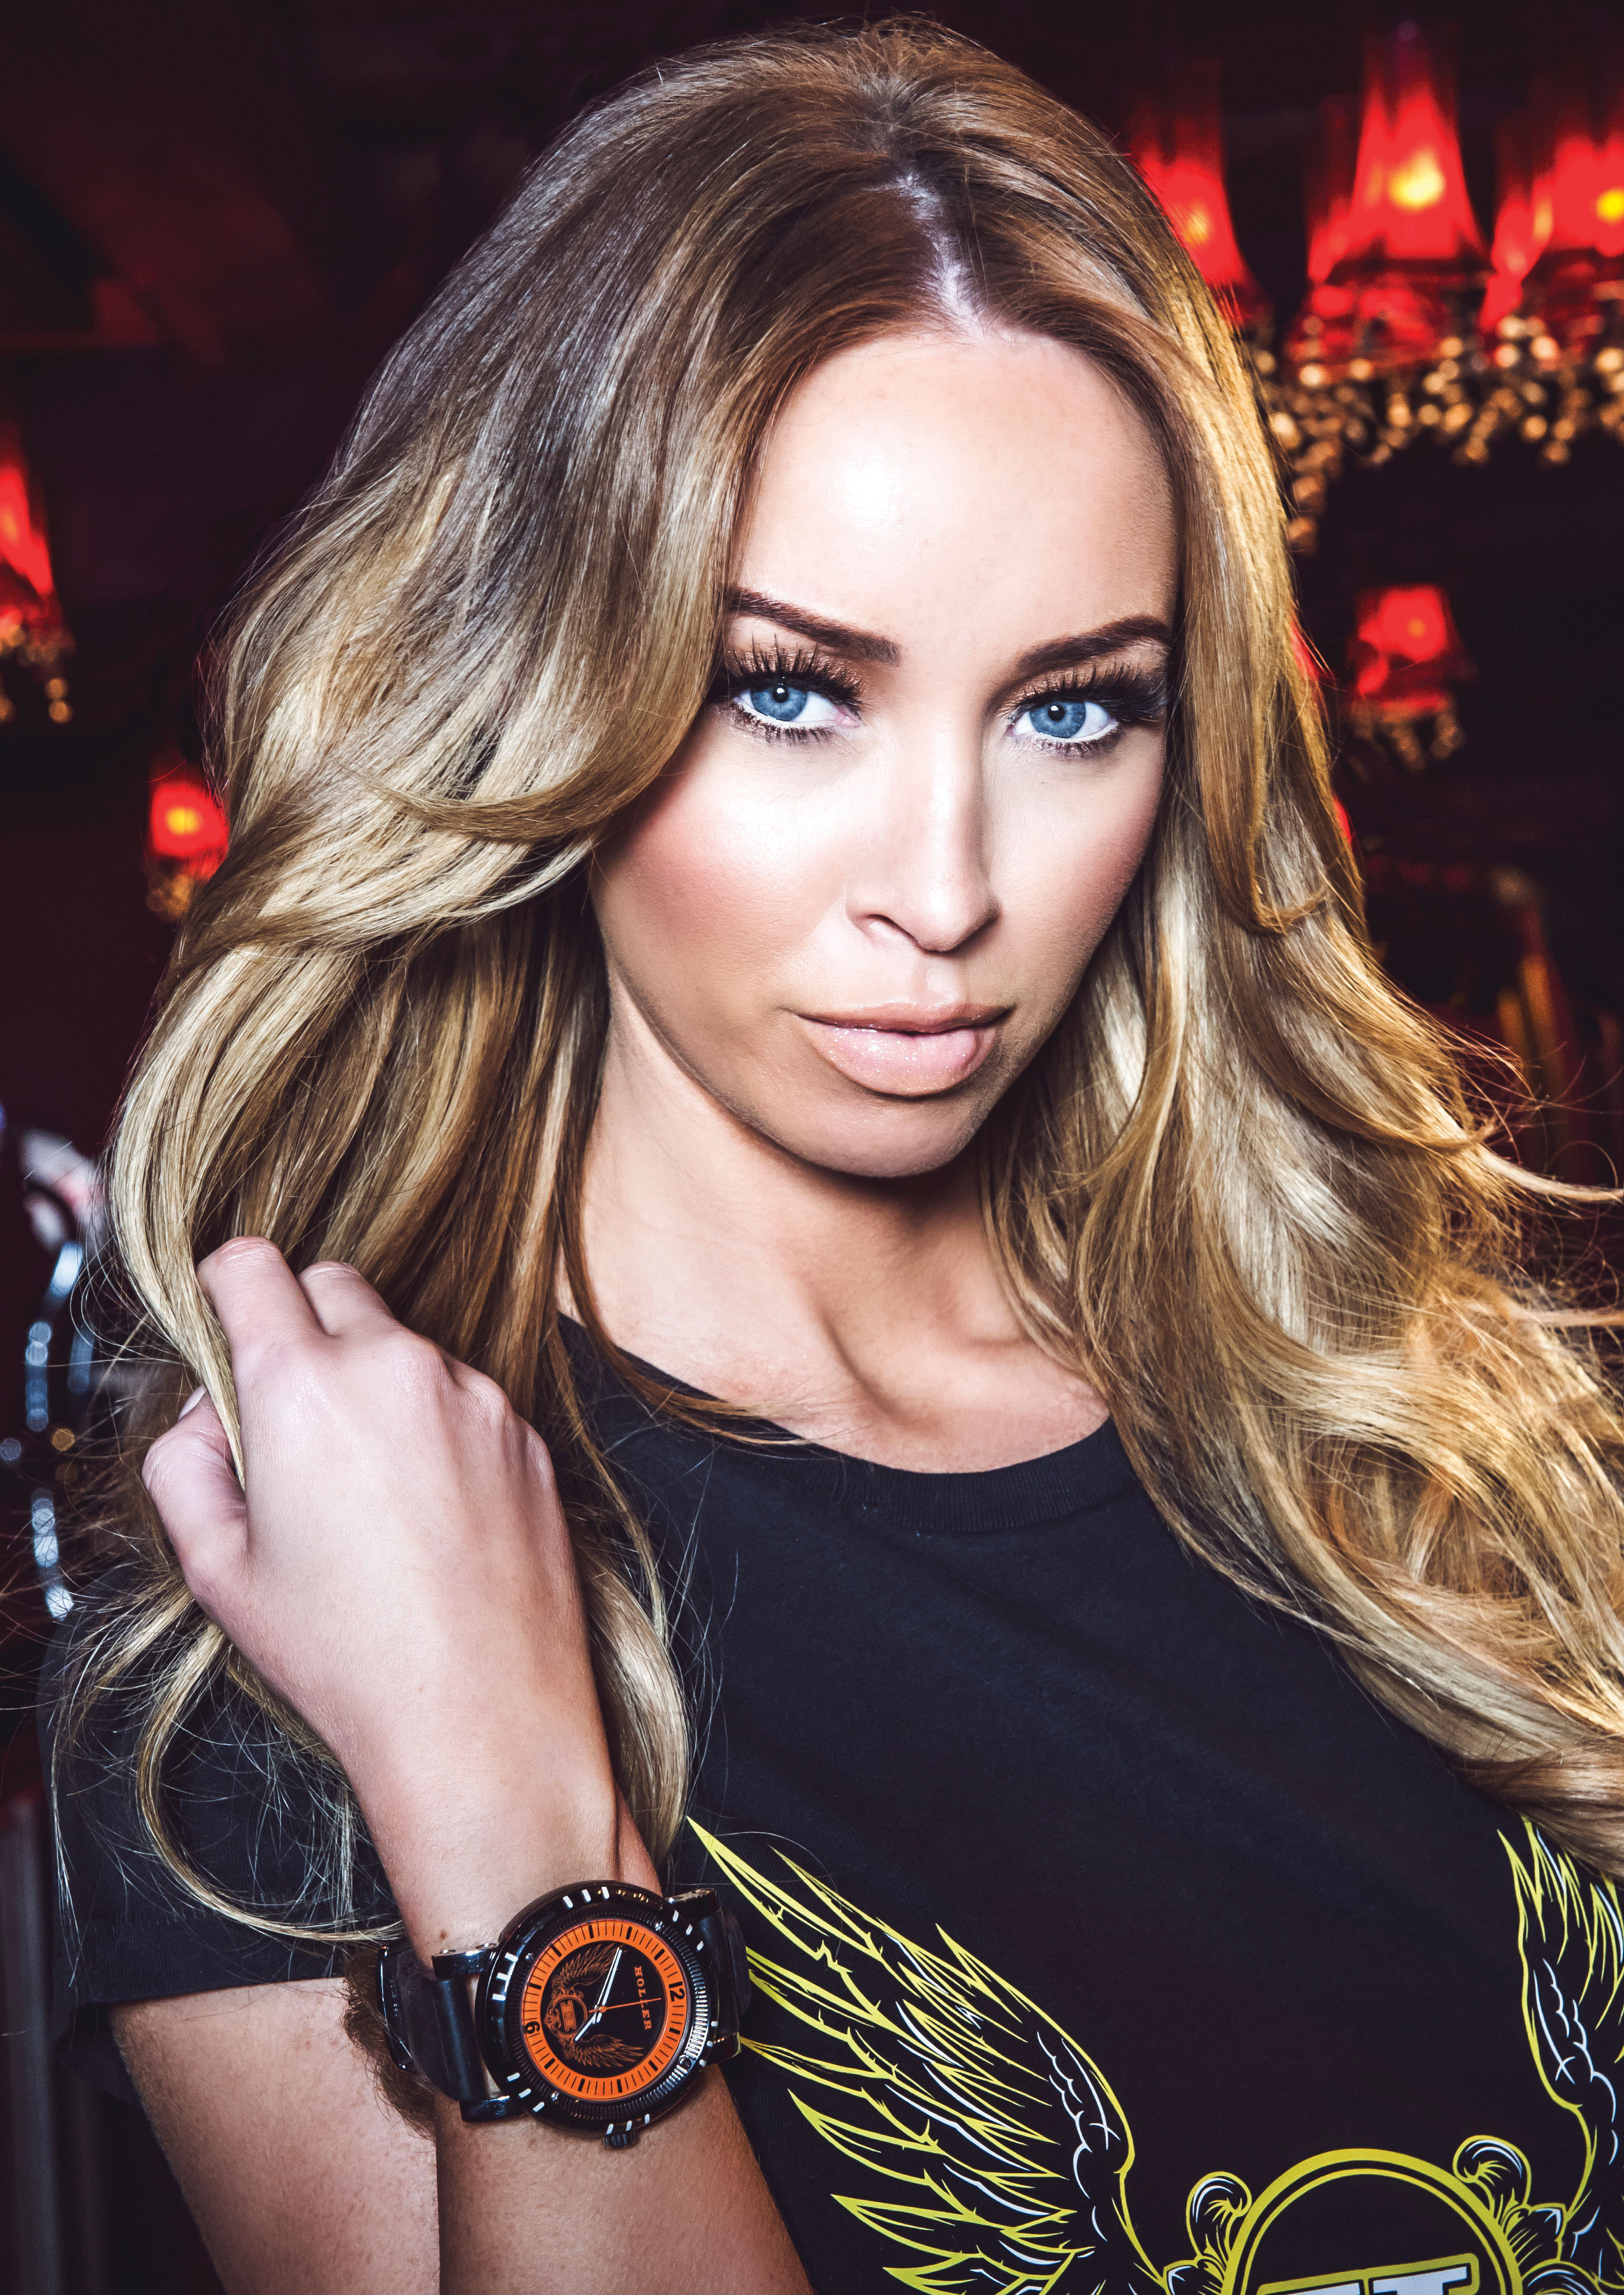 lauren pope dating site News lauren has moved on with someone from her past the los angeles native has been back together with ex-boyfriend sean evans since june, our insider reveals, shortly after she and higgins went public with their split according to reports, lauren and sean dated for about three years before calling it quits in 2015.